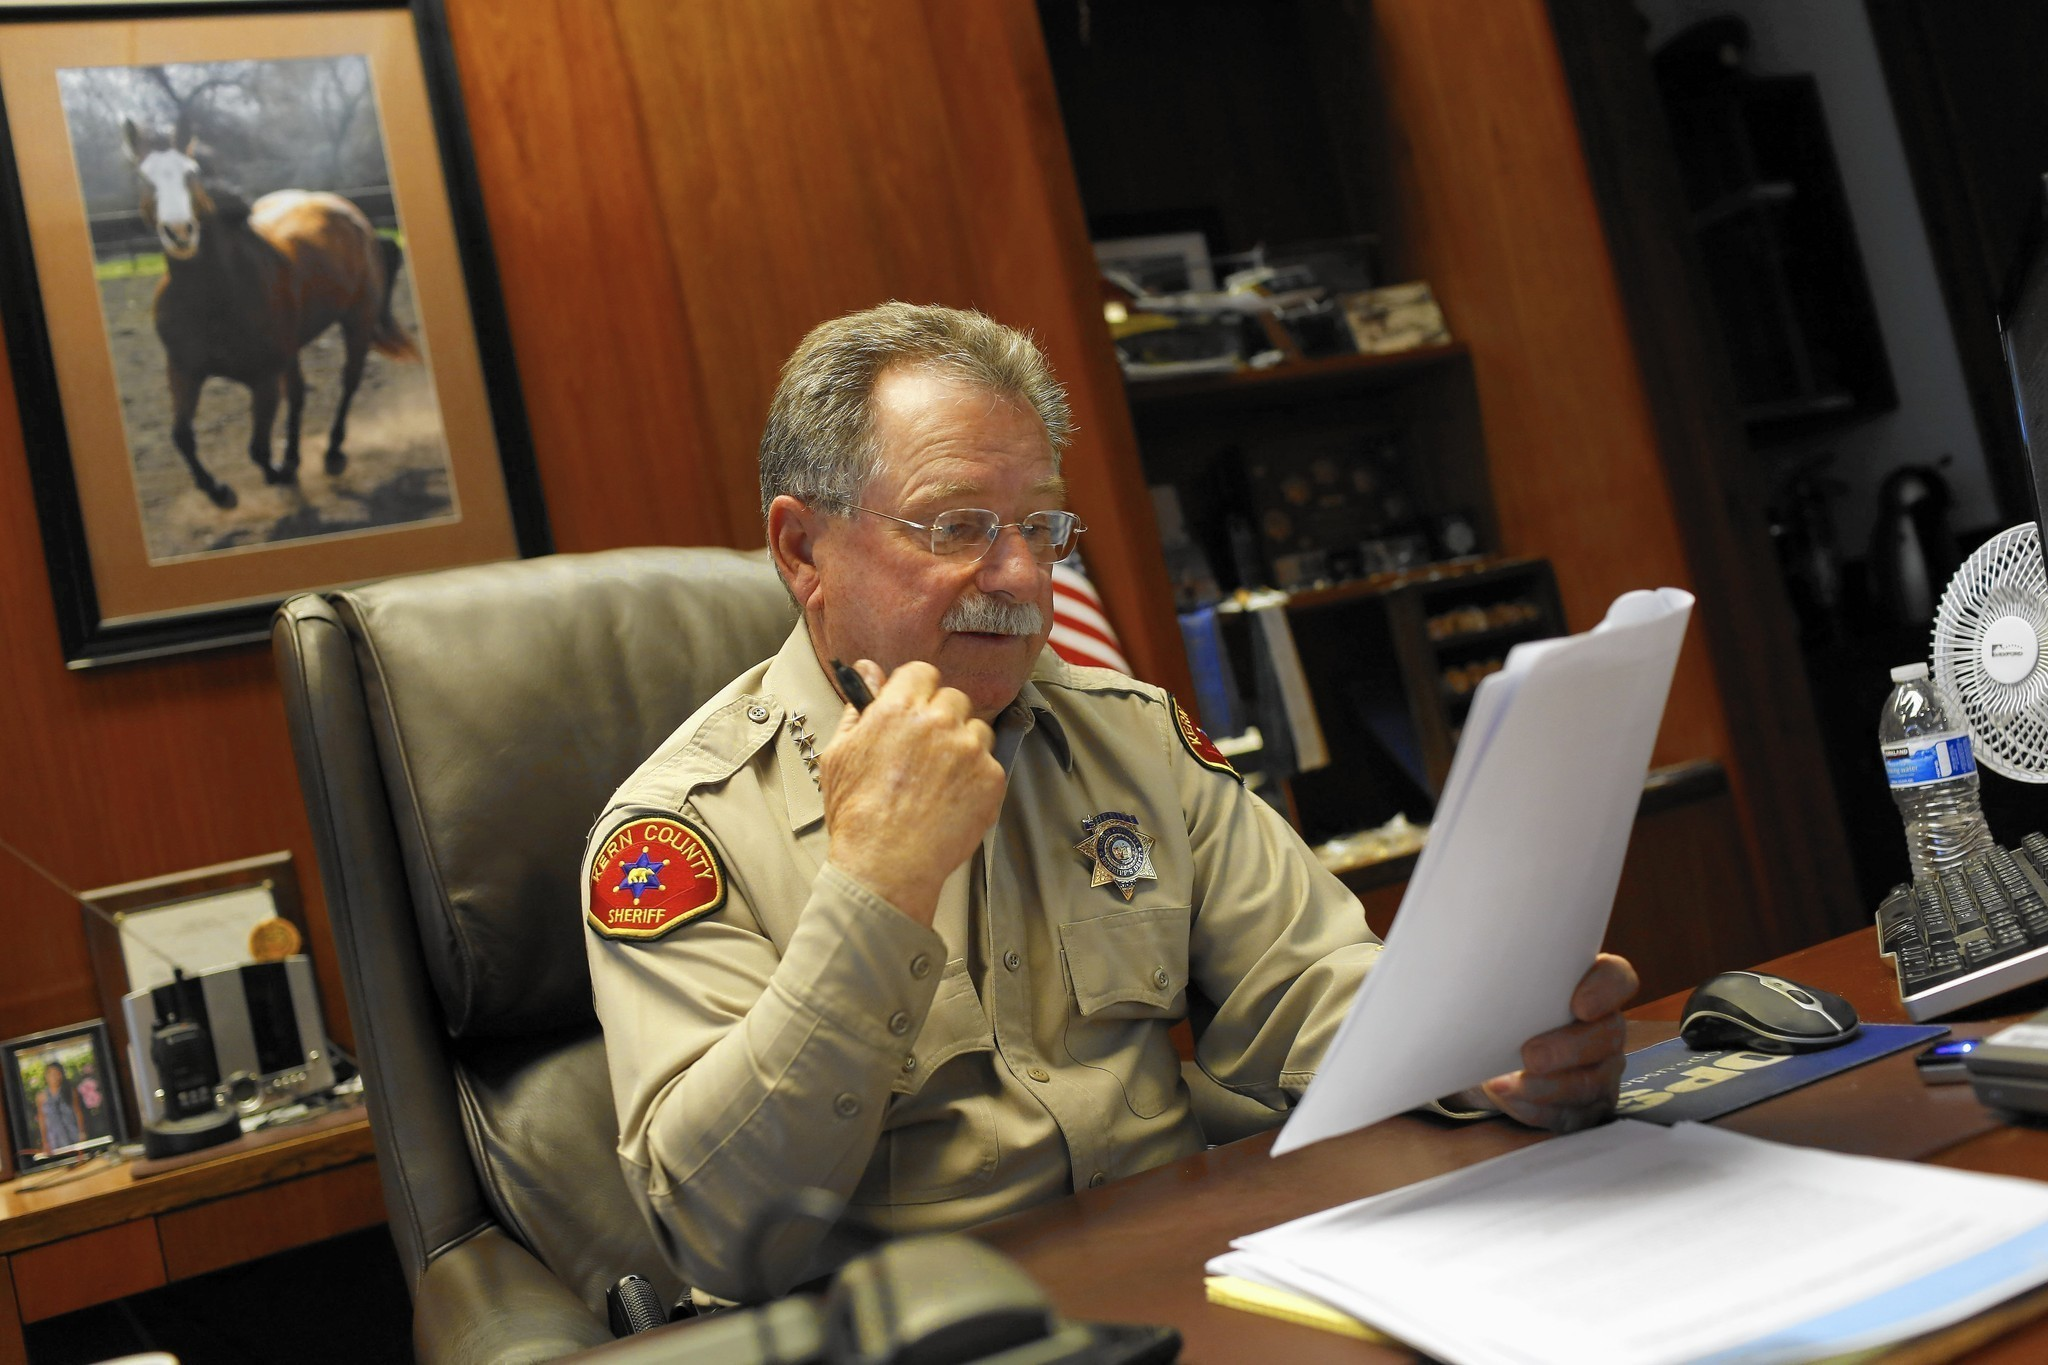 Kern County sheriff a defiant California maverick on immigration